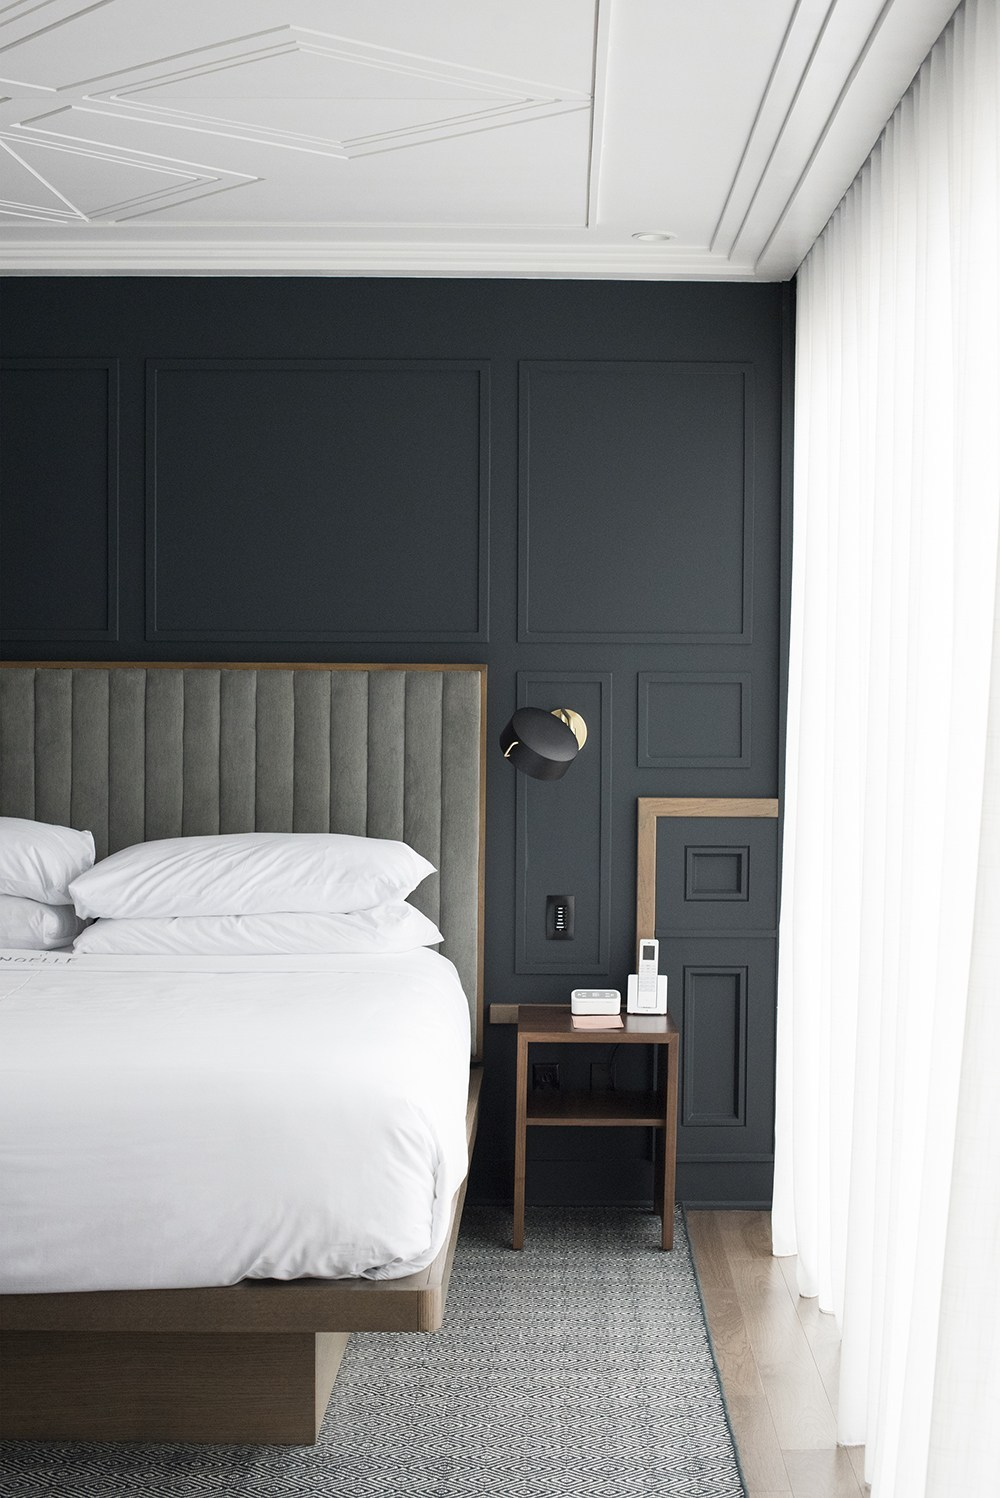 10 Ways to Beat the Winter Blues - roomfortuesday.com